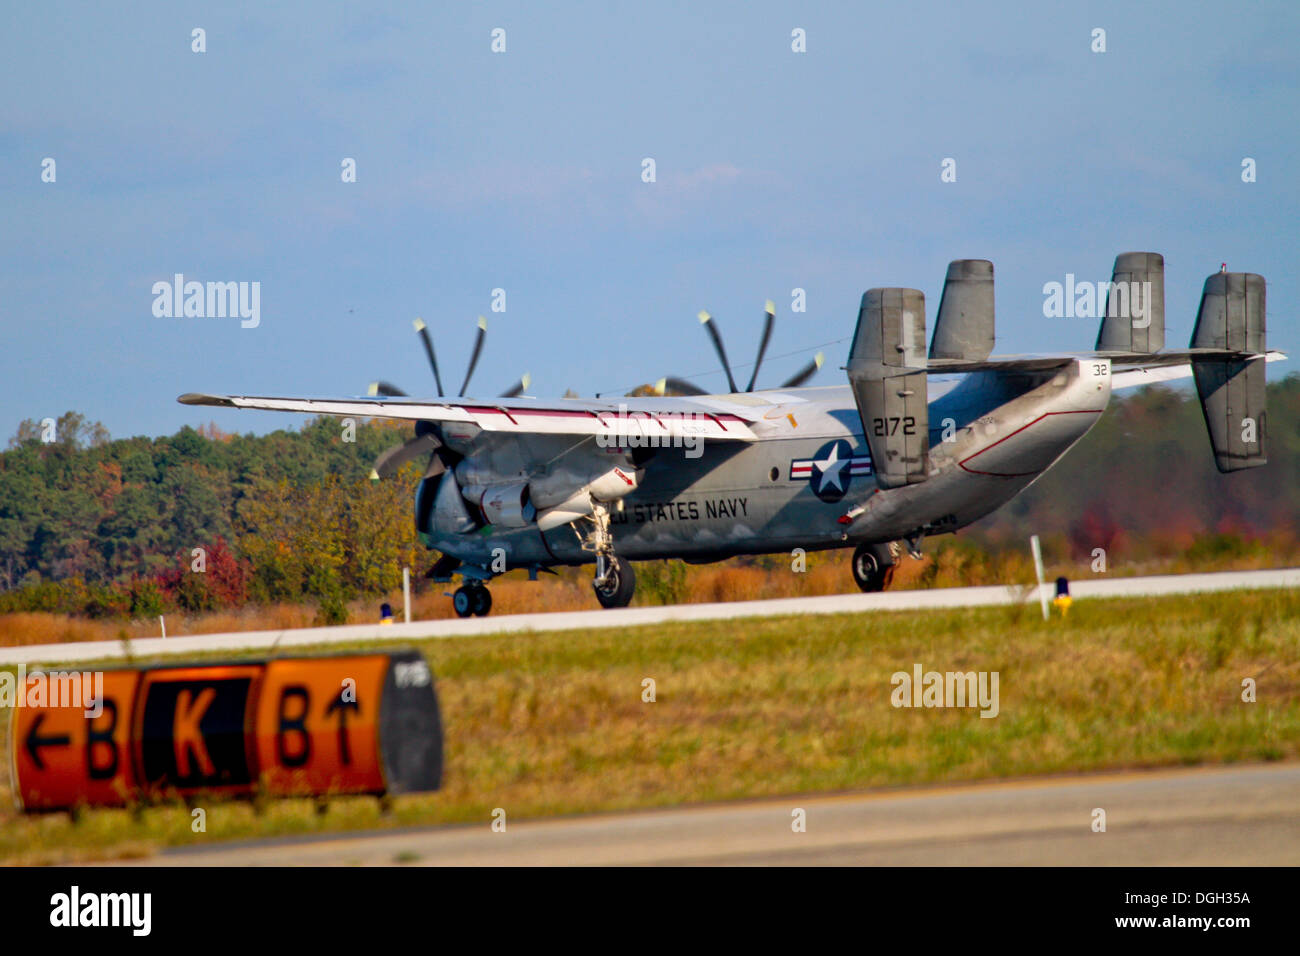 A U.S. Navy C-2A Greyhound from VAW-120 lands at Atlantic City International Airport, N.J. for a 'touch and go' practice landing on Oct. 18. VAW-120, known as the 'Greyhawks,' are based out of NAS Norfolk, Va. - Stock Image